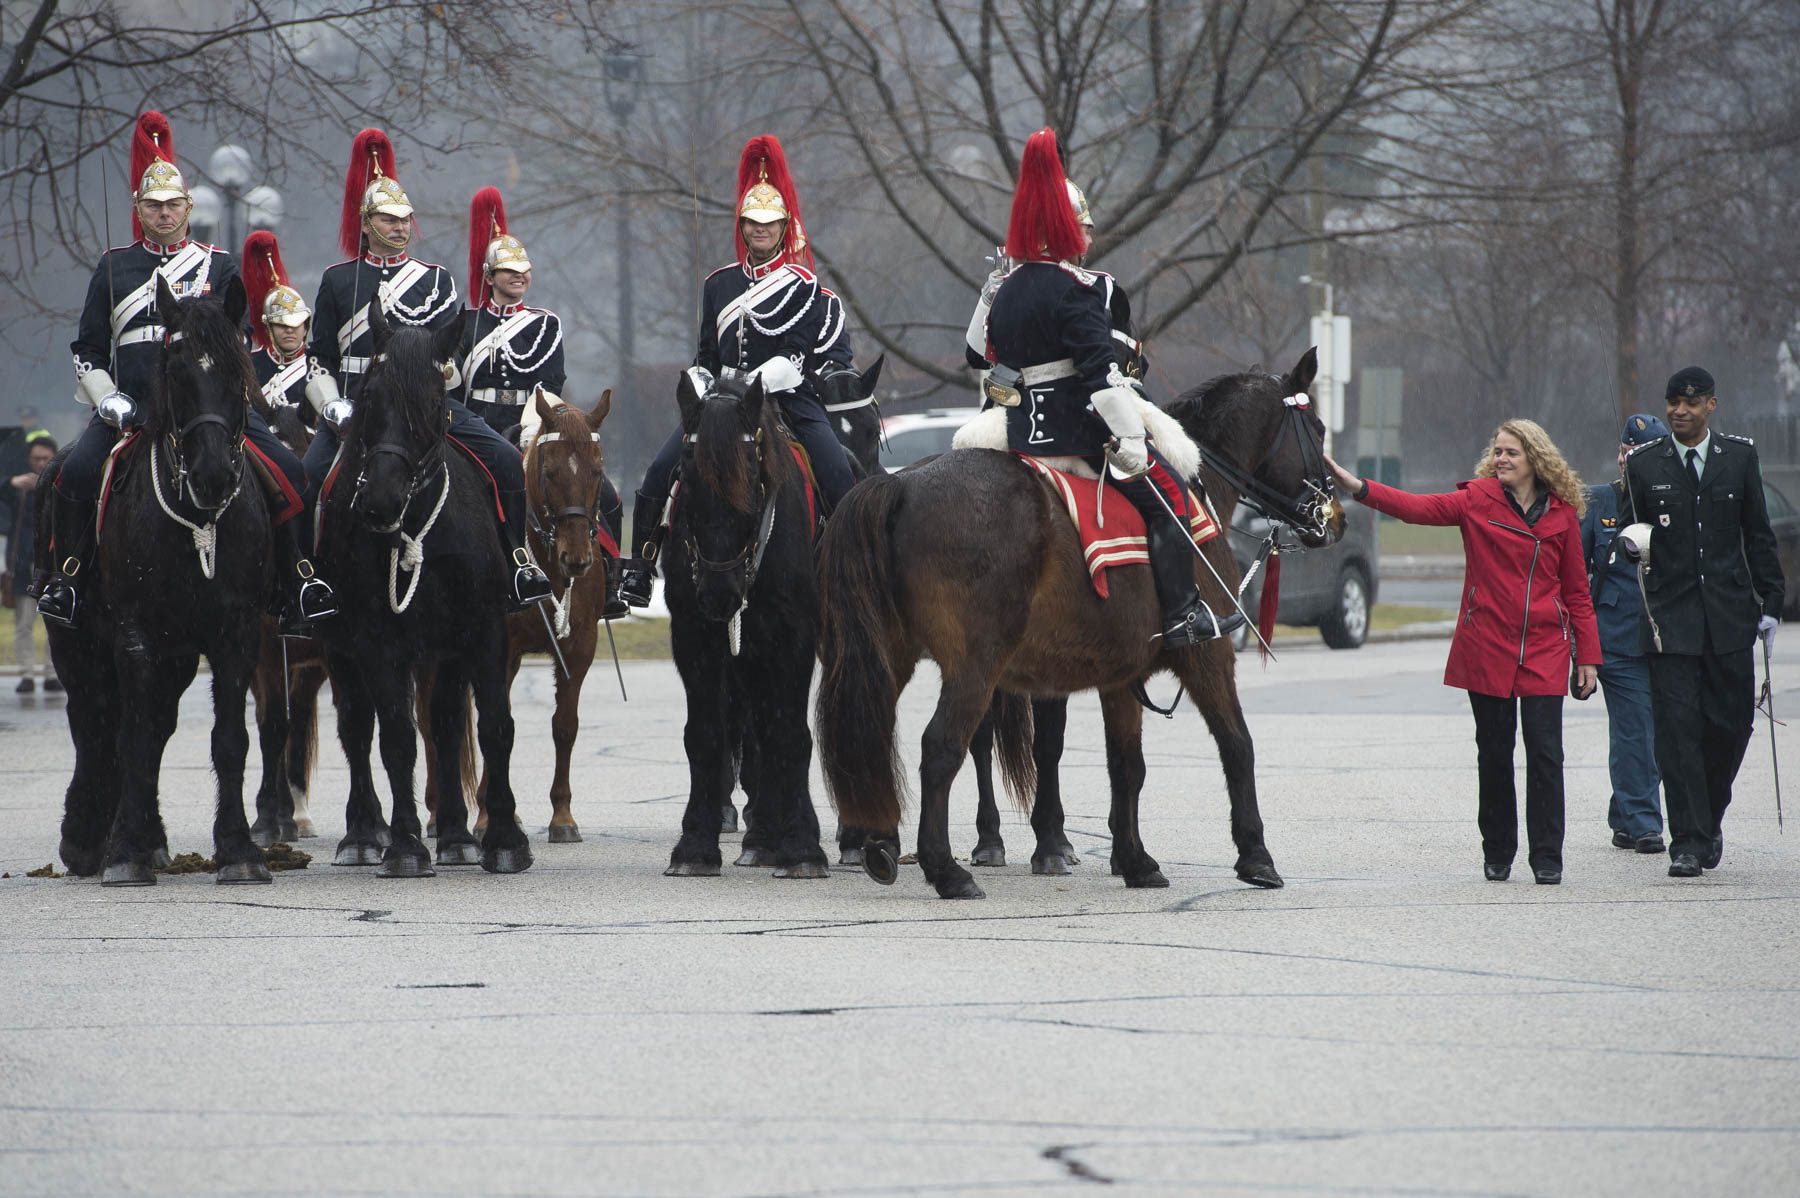 The Governor General's Horse Guards were also present.